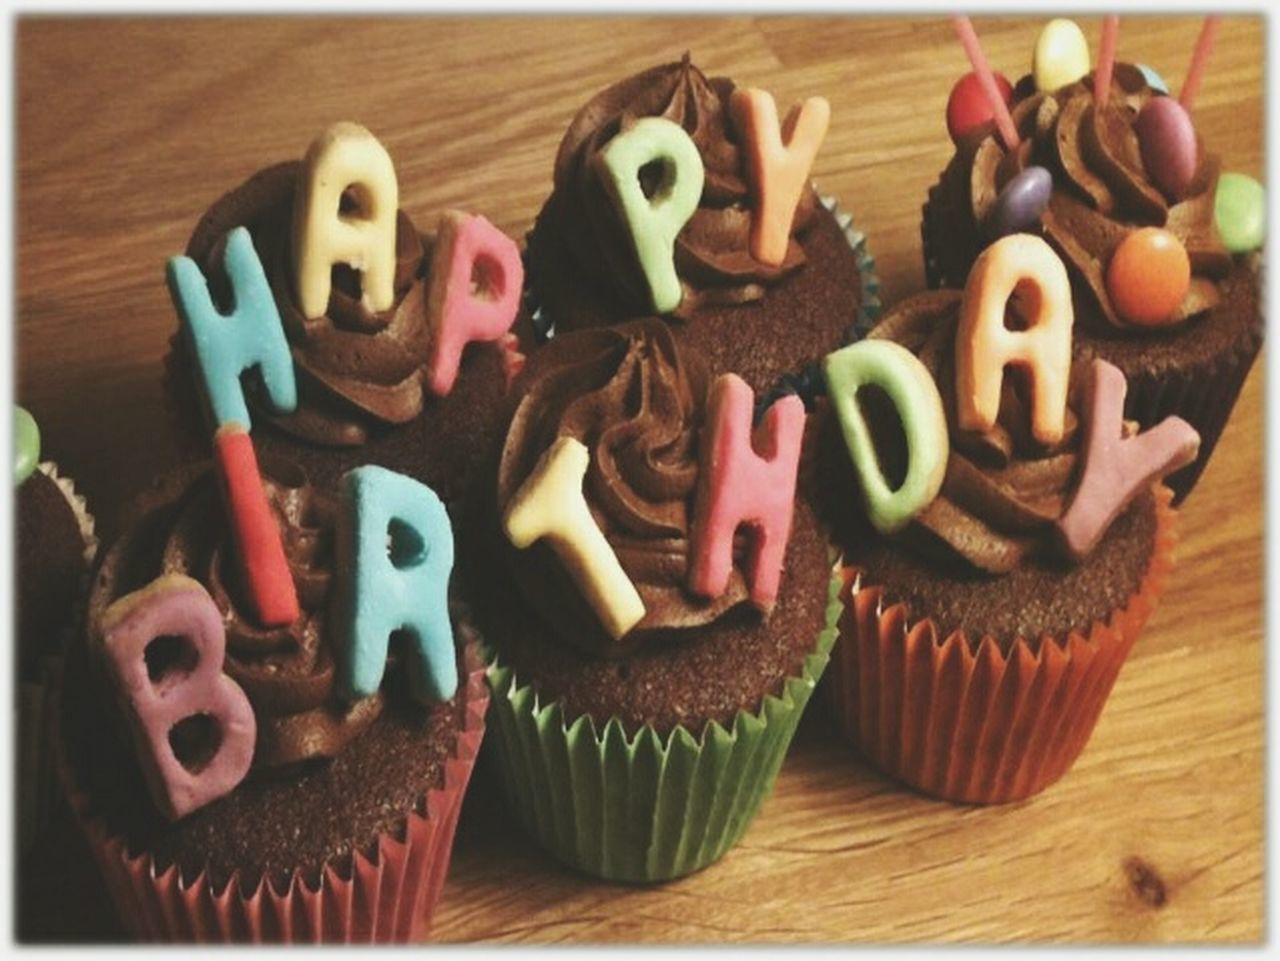 food and drink, indulgence, food, sweet food, indoors, freshness, temptation, still life, dessert, table, text, unhealthy eating, baked, no people, cupcake, ready-to-eat, birthday candles, cake, close-up, birthday cake, alphabet, day